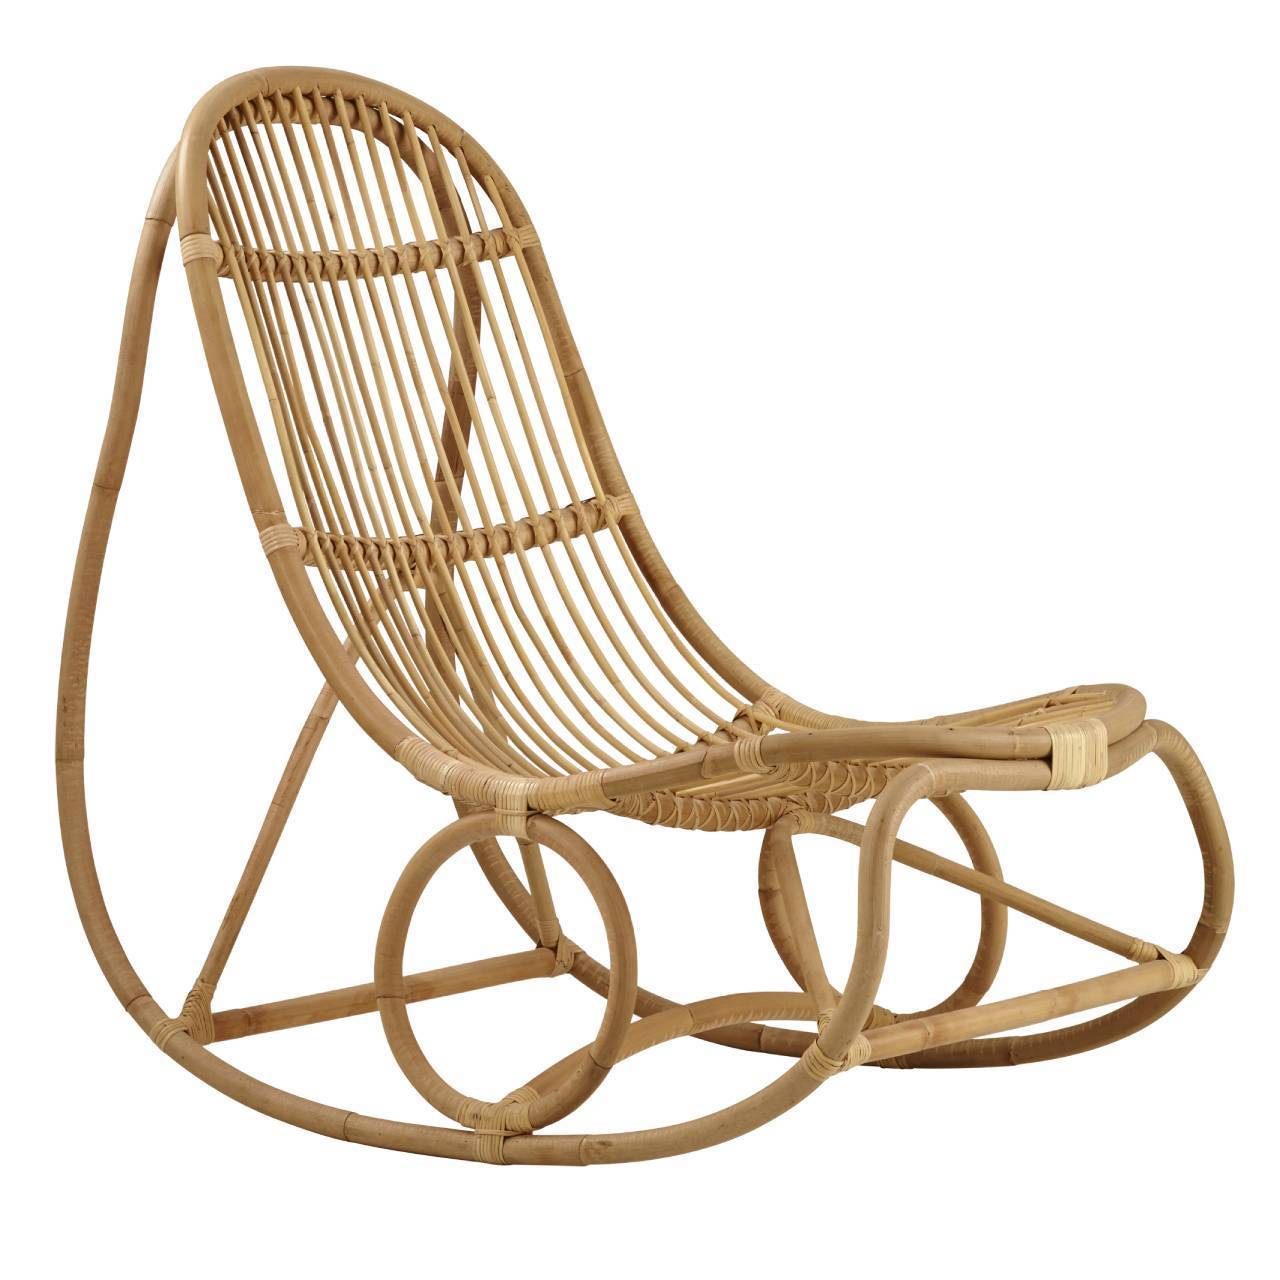 Sika, Nanny Rocking Chair, Natural Skin On- Placewares